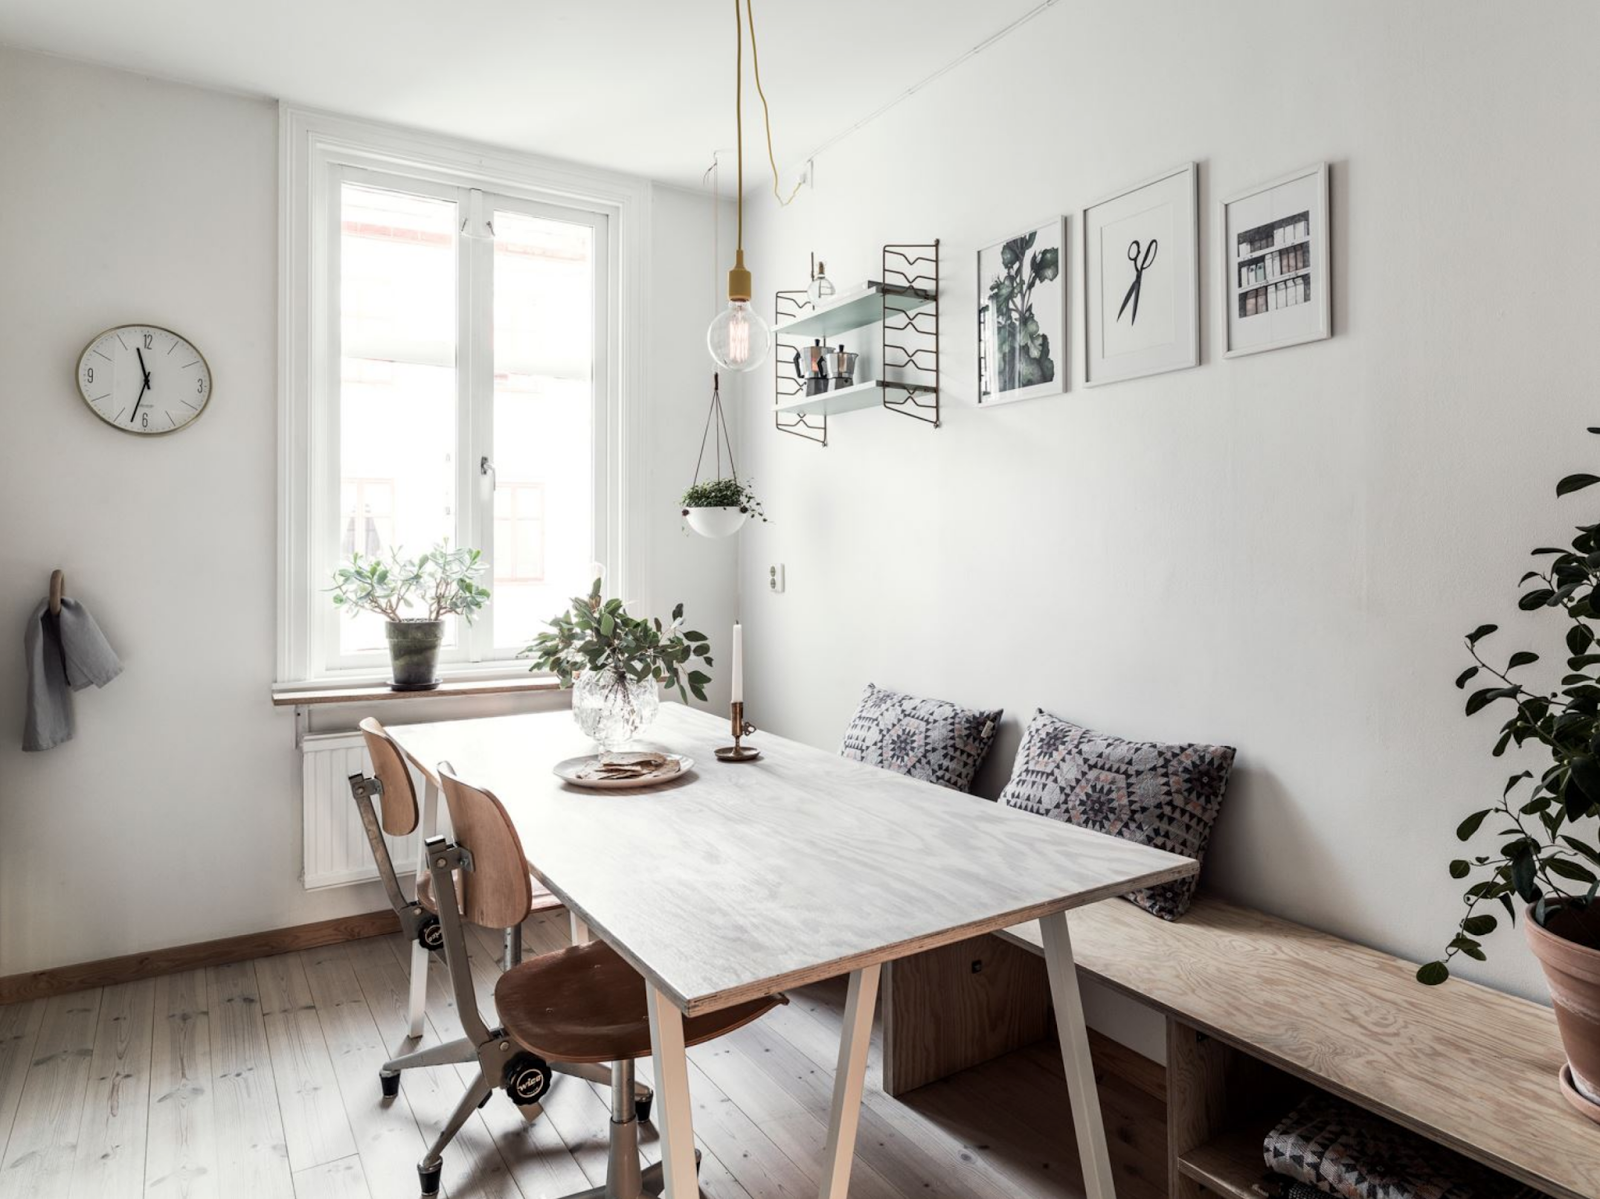 dining table and vintage chairs in the nordic design kitchen